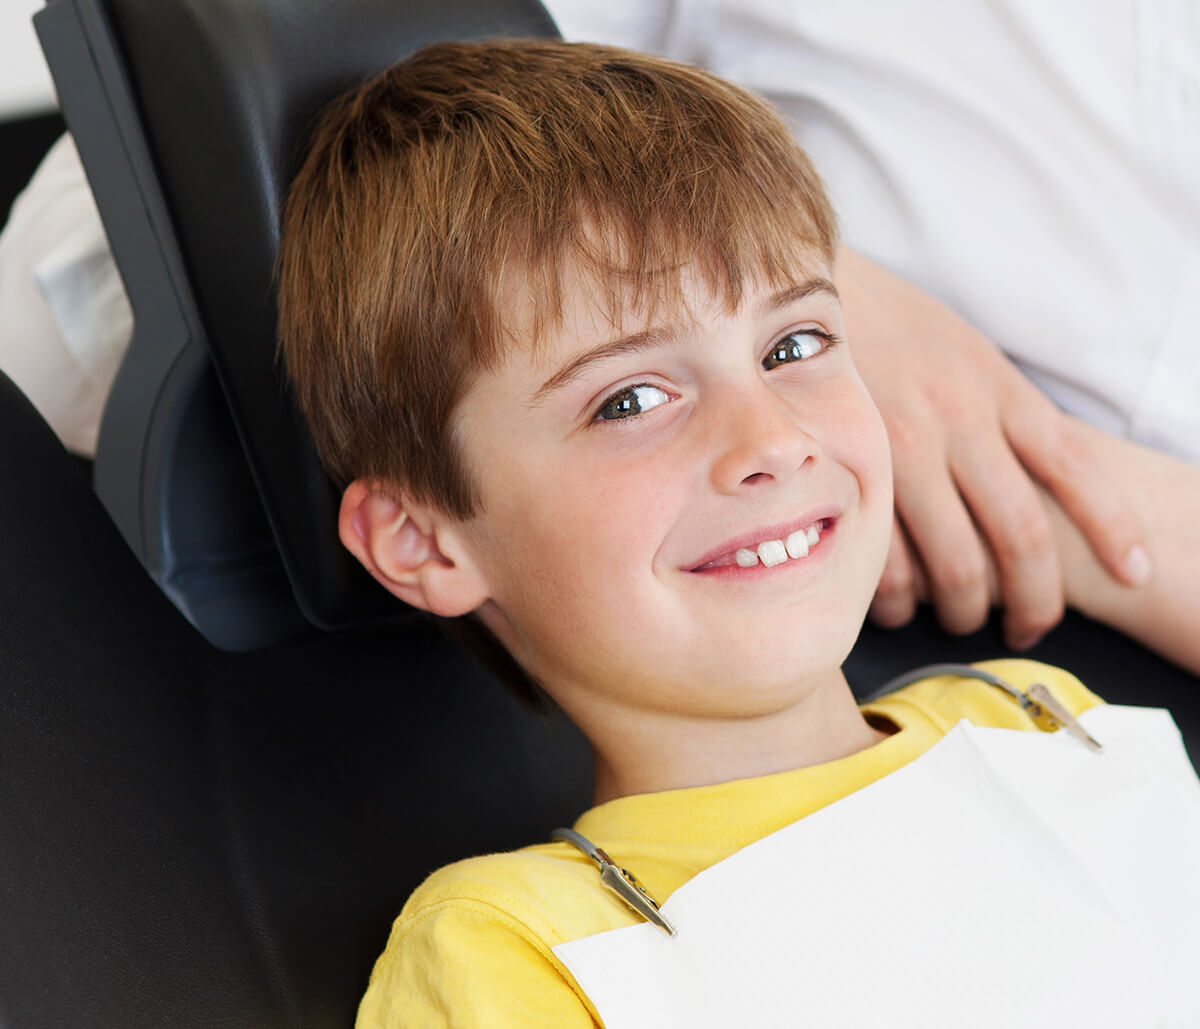 Dentist in Greensboro, NC Area Offering Appliance to Help Your Child Avoid the Long-Term Impacts of Thumb Sucking